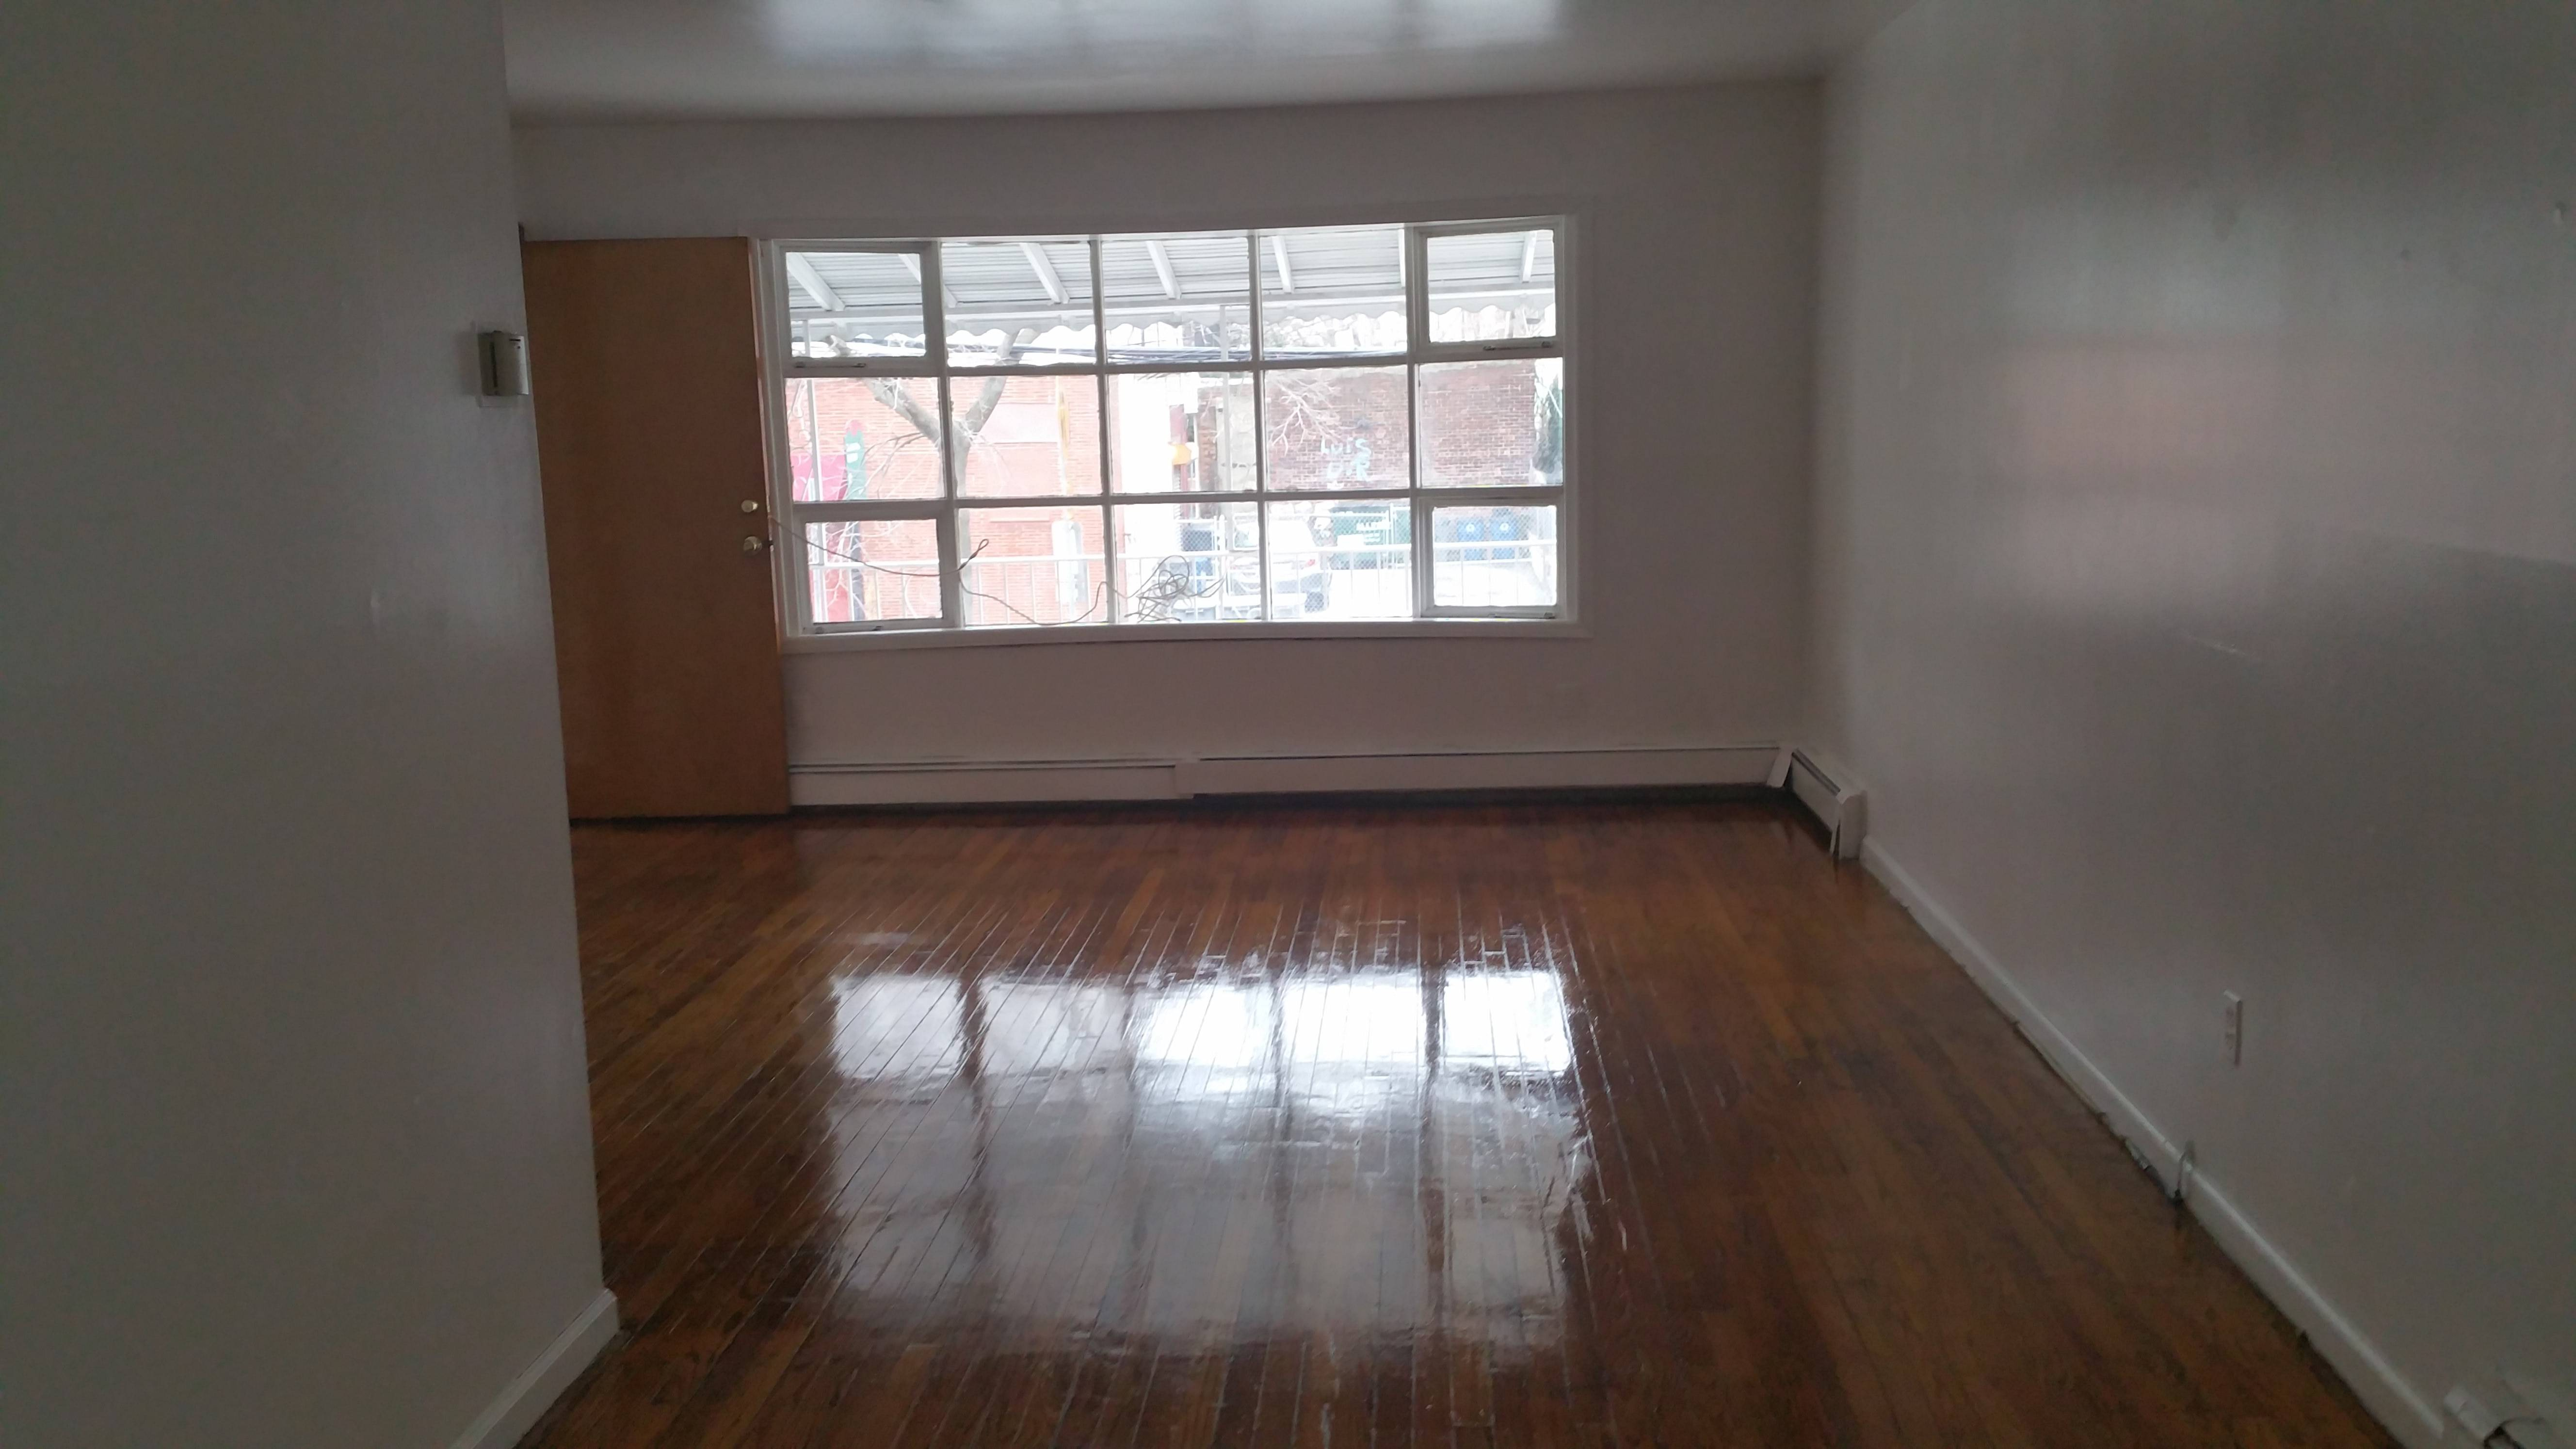 bronx of for apartment one bedroom rent chicago yochicago renters apartments downtown in finds new the luxury and deals